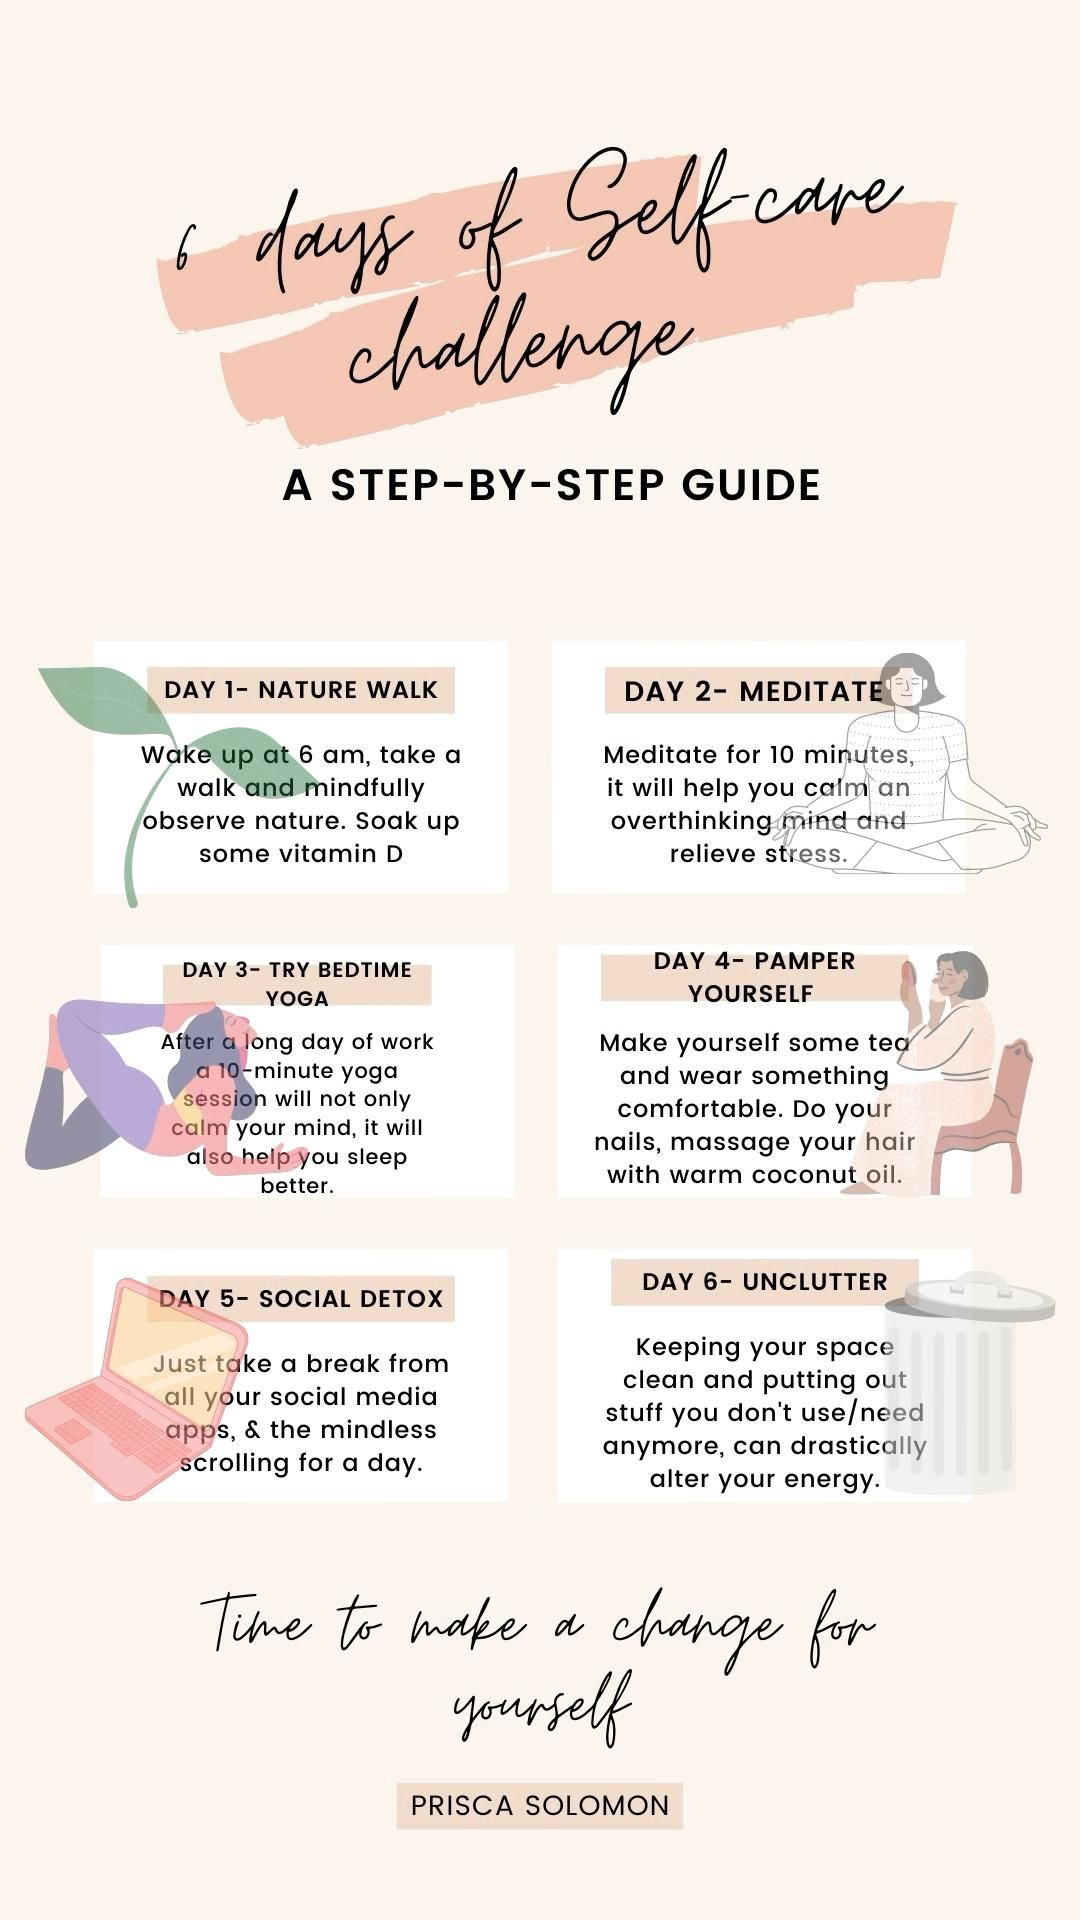 Self-care is a daily practice